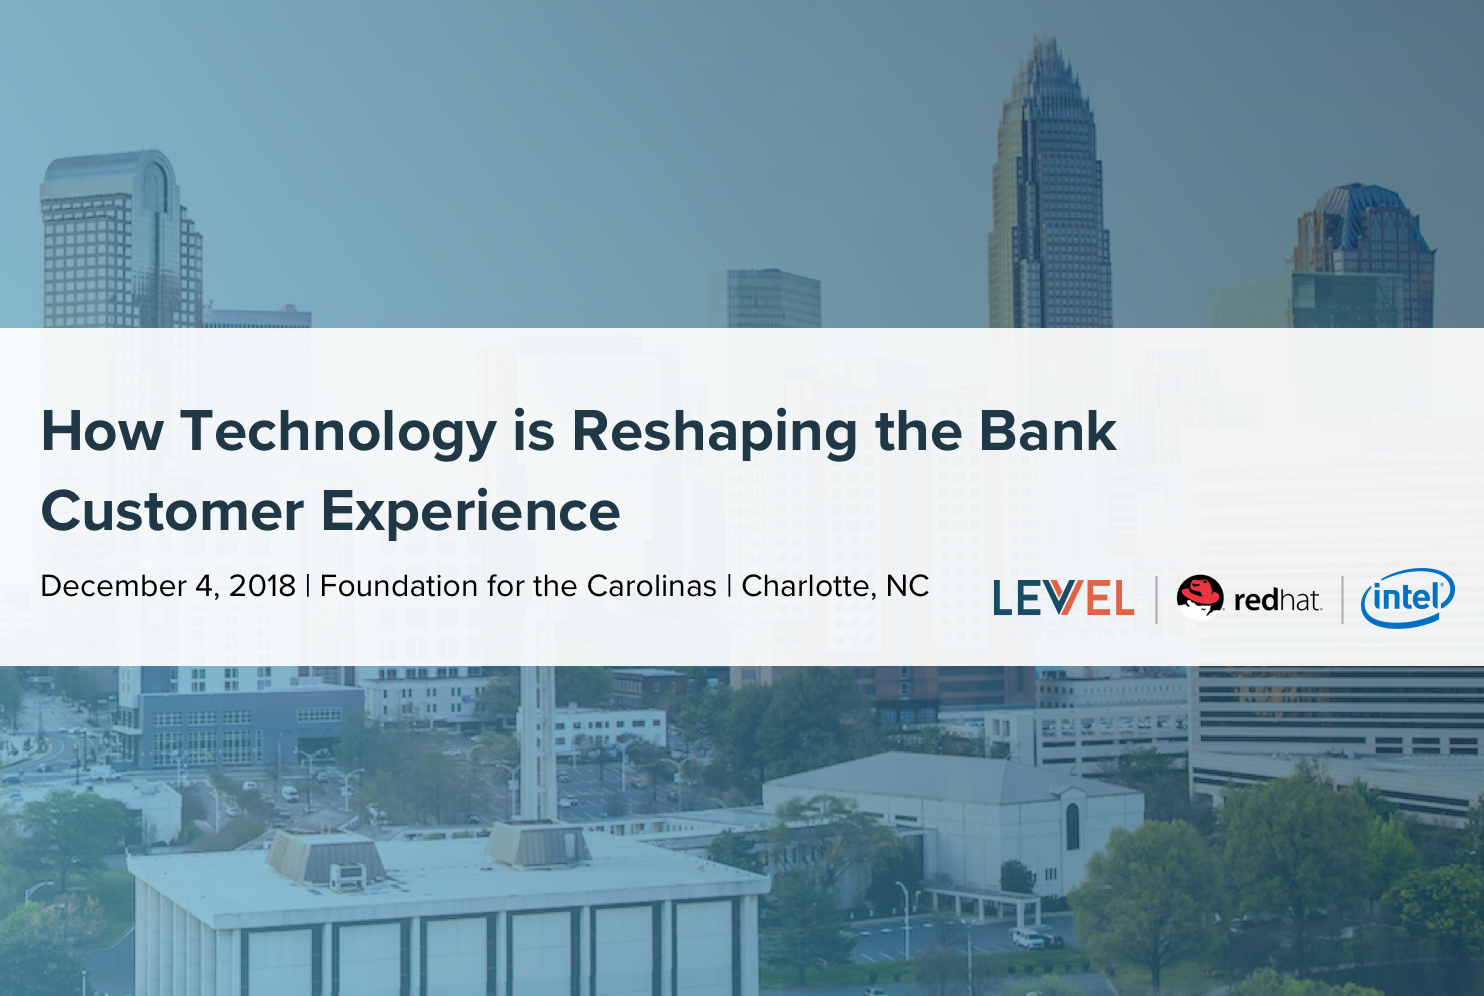 How Technology is Reshaping the Bank Customer Experience